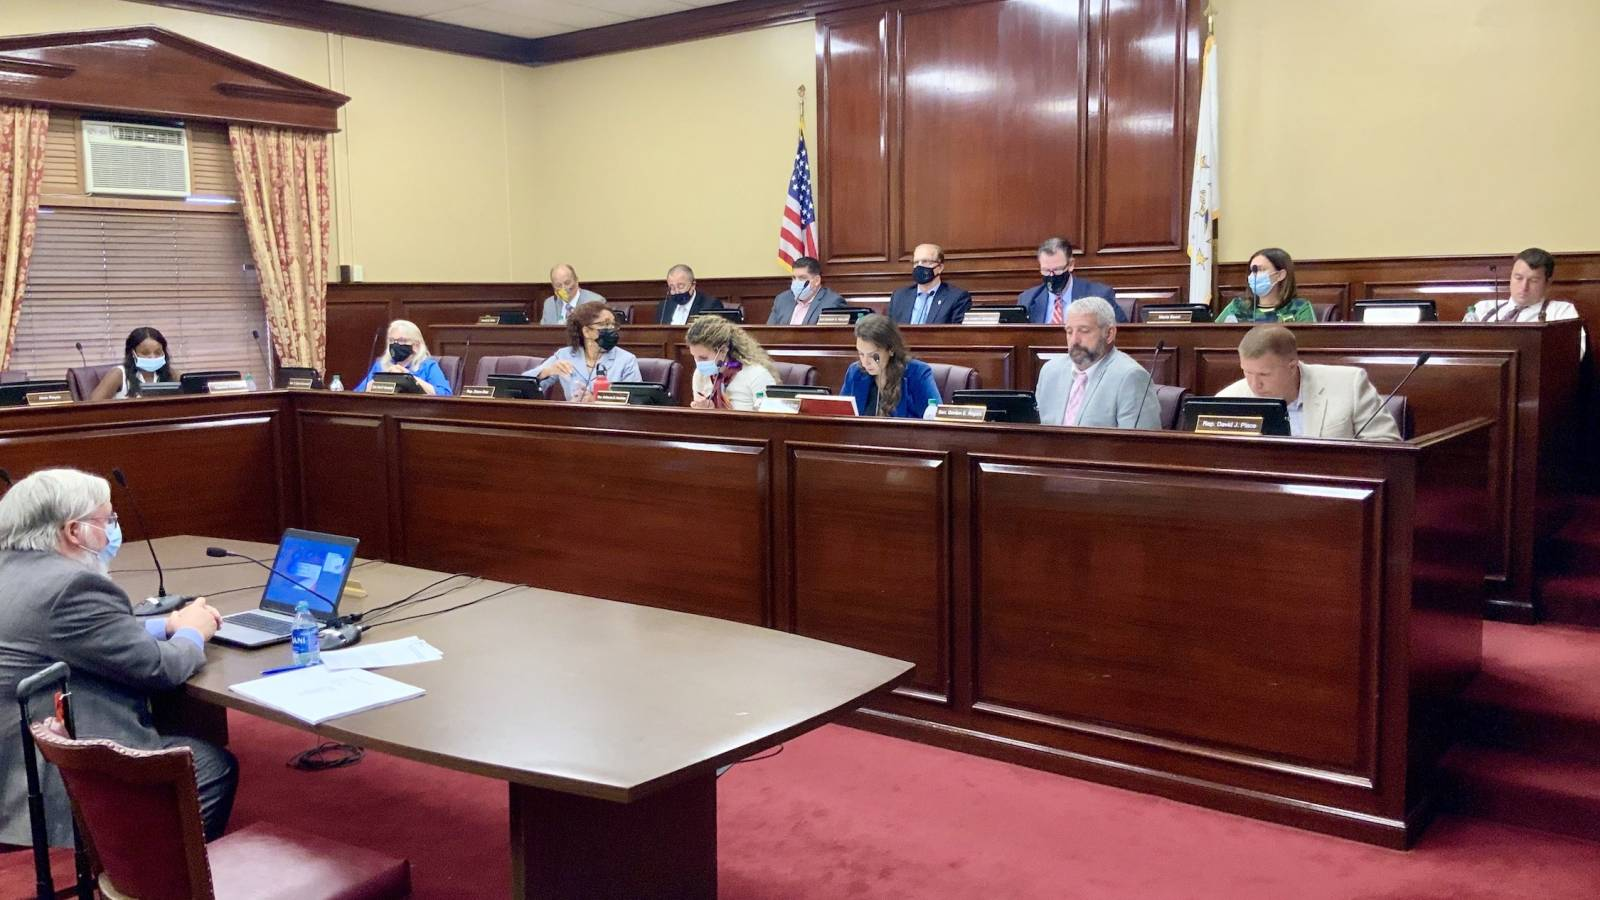 Rhode Island begins the process of redistricting